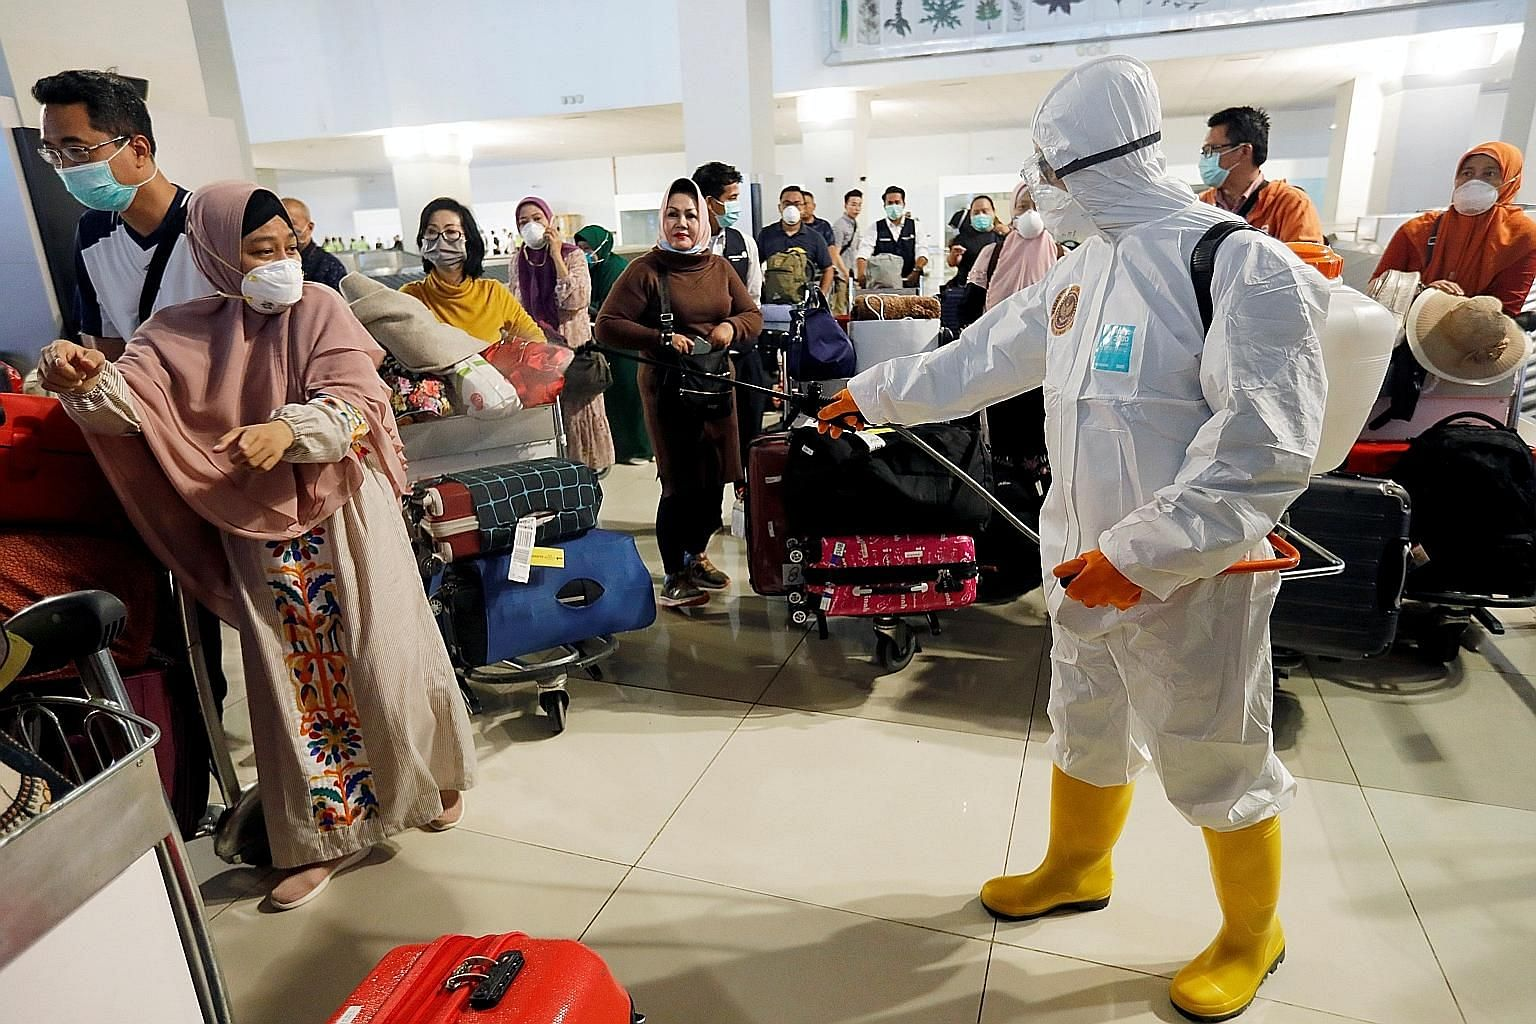 A worker spraying disinfectant on passengers' baggage at the international arrivals terminal of Soekarno-Hatta Airport near Jakarta, amid the coronavirus outbreak, last Thursday.